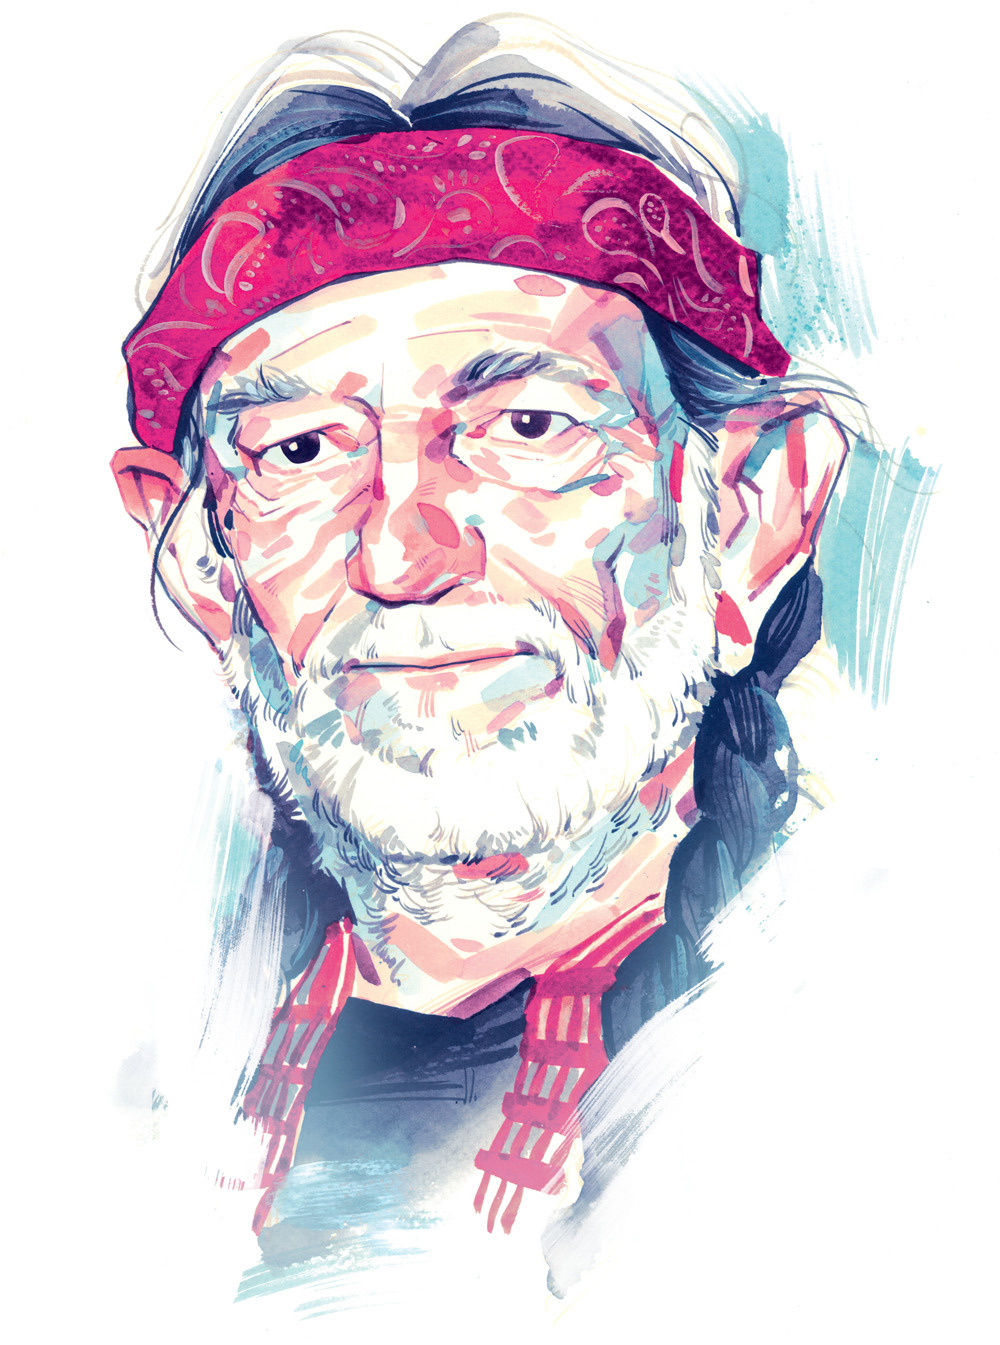 "nparts:  With Heroes, Willie Nelson is still a rebel rebel""We had a couple of pots over there at the Bulldog and then at The Grey Area and then hit two or three good spots after that,"" Nelson says, adding, ""you probably wouldn't remember it,"" when asked what a night on the town is like in Amsterdam with him and Snoop Dogg. However, Nelson takes his advocacy seriously and is not only the president of the 26-year-old Farm Aid, which has raised US$39-million to help the American family farmer, but is outspoken on everything from the war in Afghanistan to ending the marijuana laws that have imprisoned about 20 million Americans since 1965.""Most people who know anything at all know that marijuana is a good medicine for stress and a nice recreational drug for responsible adults and it should not be criminalized,"" he says. ""If we legalize it and bring our folks home from around the world fighting wars over oil, we'd all be a lot better off."" (Illustration by Kagan McLeod/National Post)"